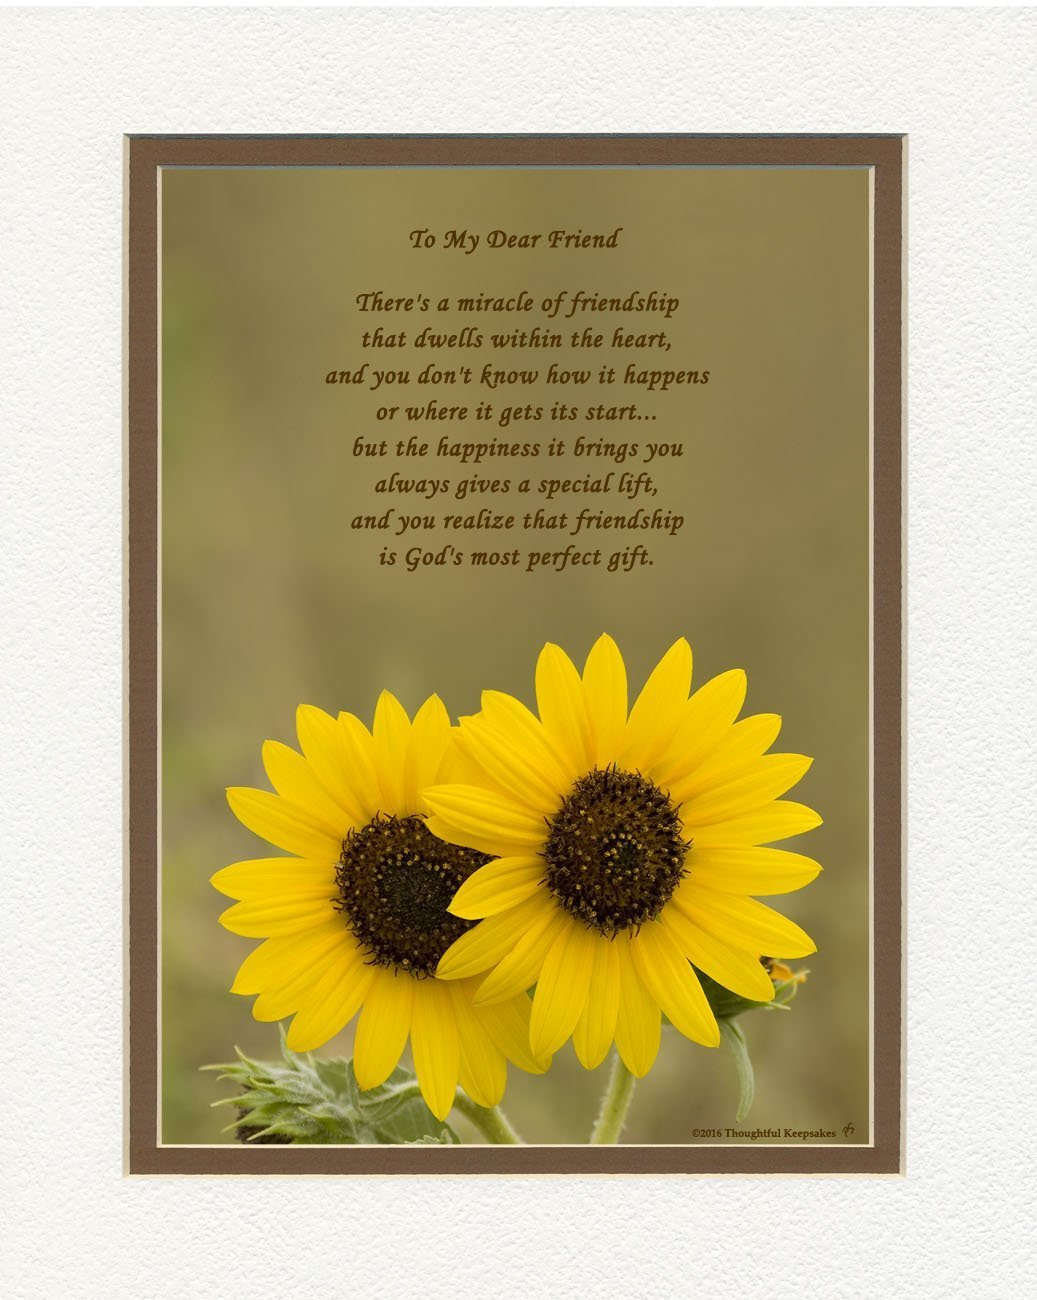 Friend Gifts with Miracle of Friendship Poem Best for Friend for Birthday Friendship Day. 8x10 Double Matted Christmas Sunflowers Photo Great Friendship Gift